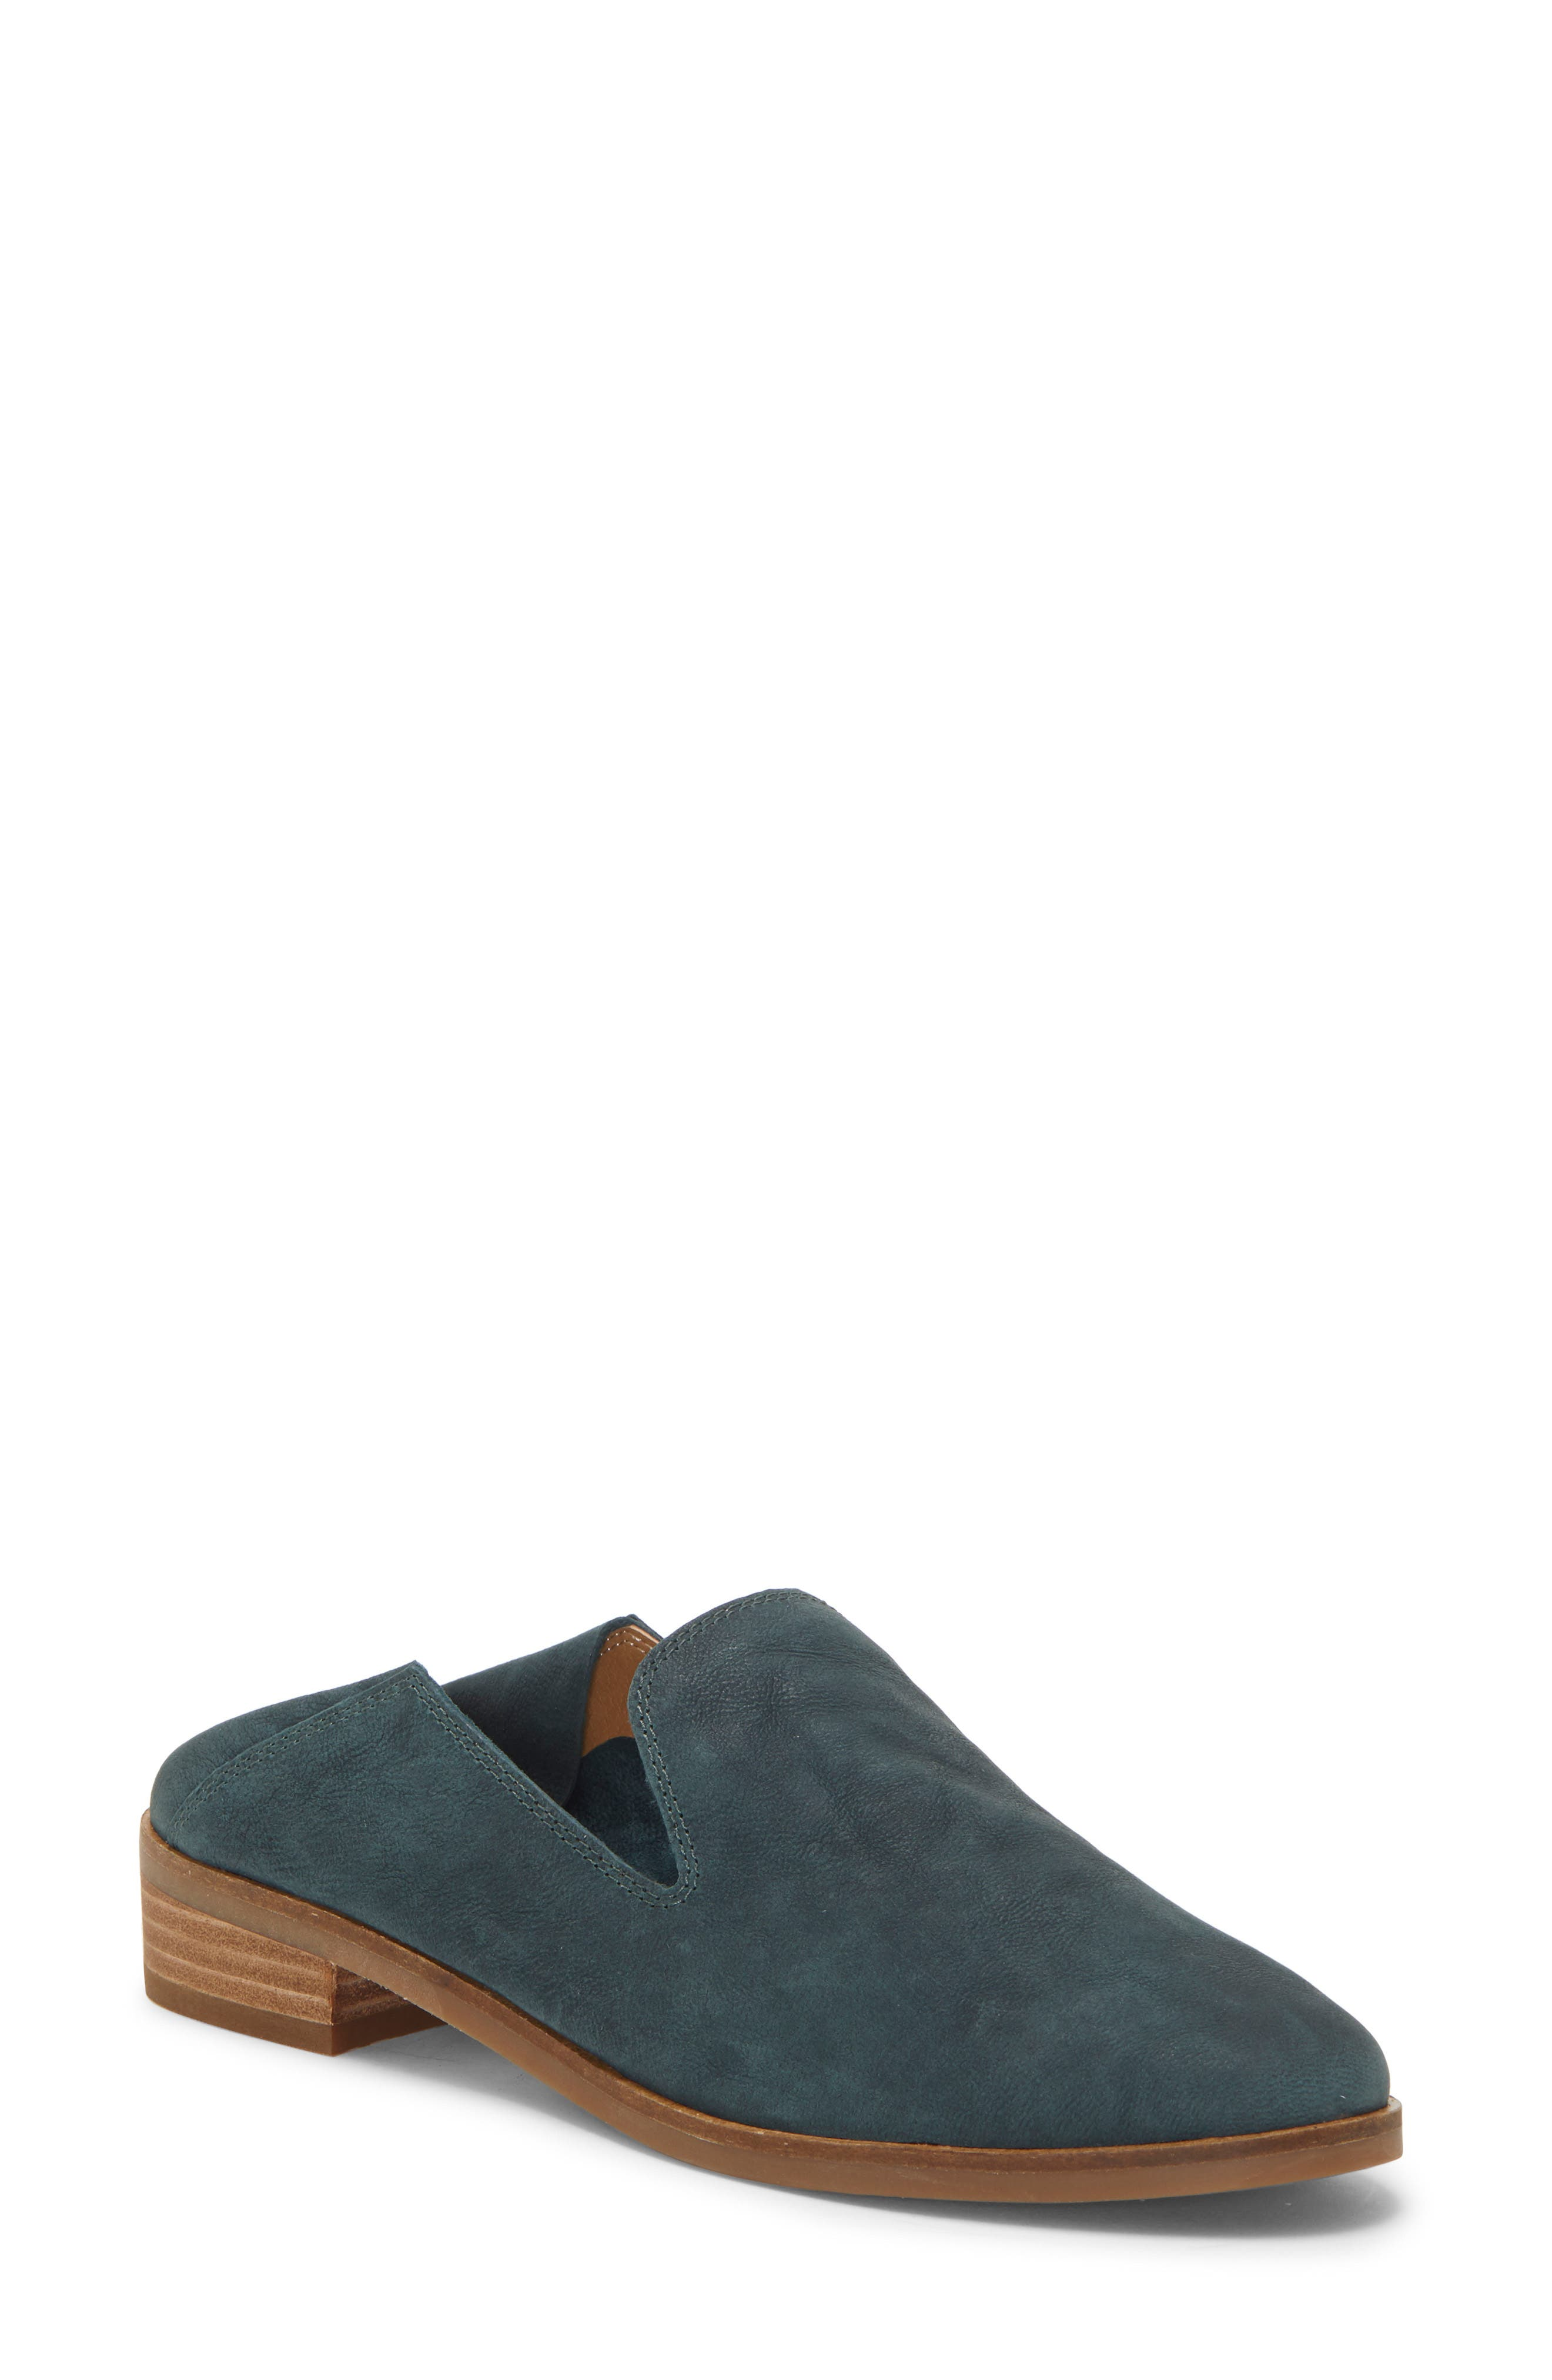 LUCKY BRAND, Cahill Flat, Alternate thumbnail 9, color, KELP LEATHER